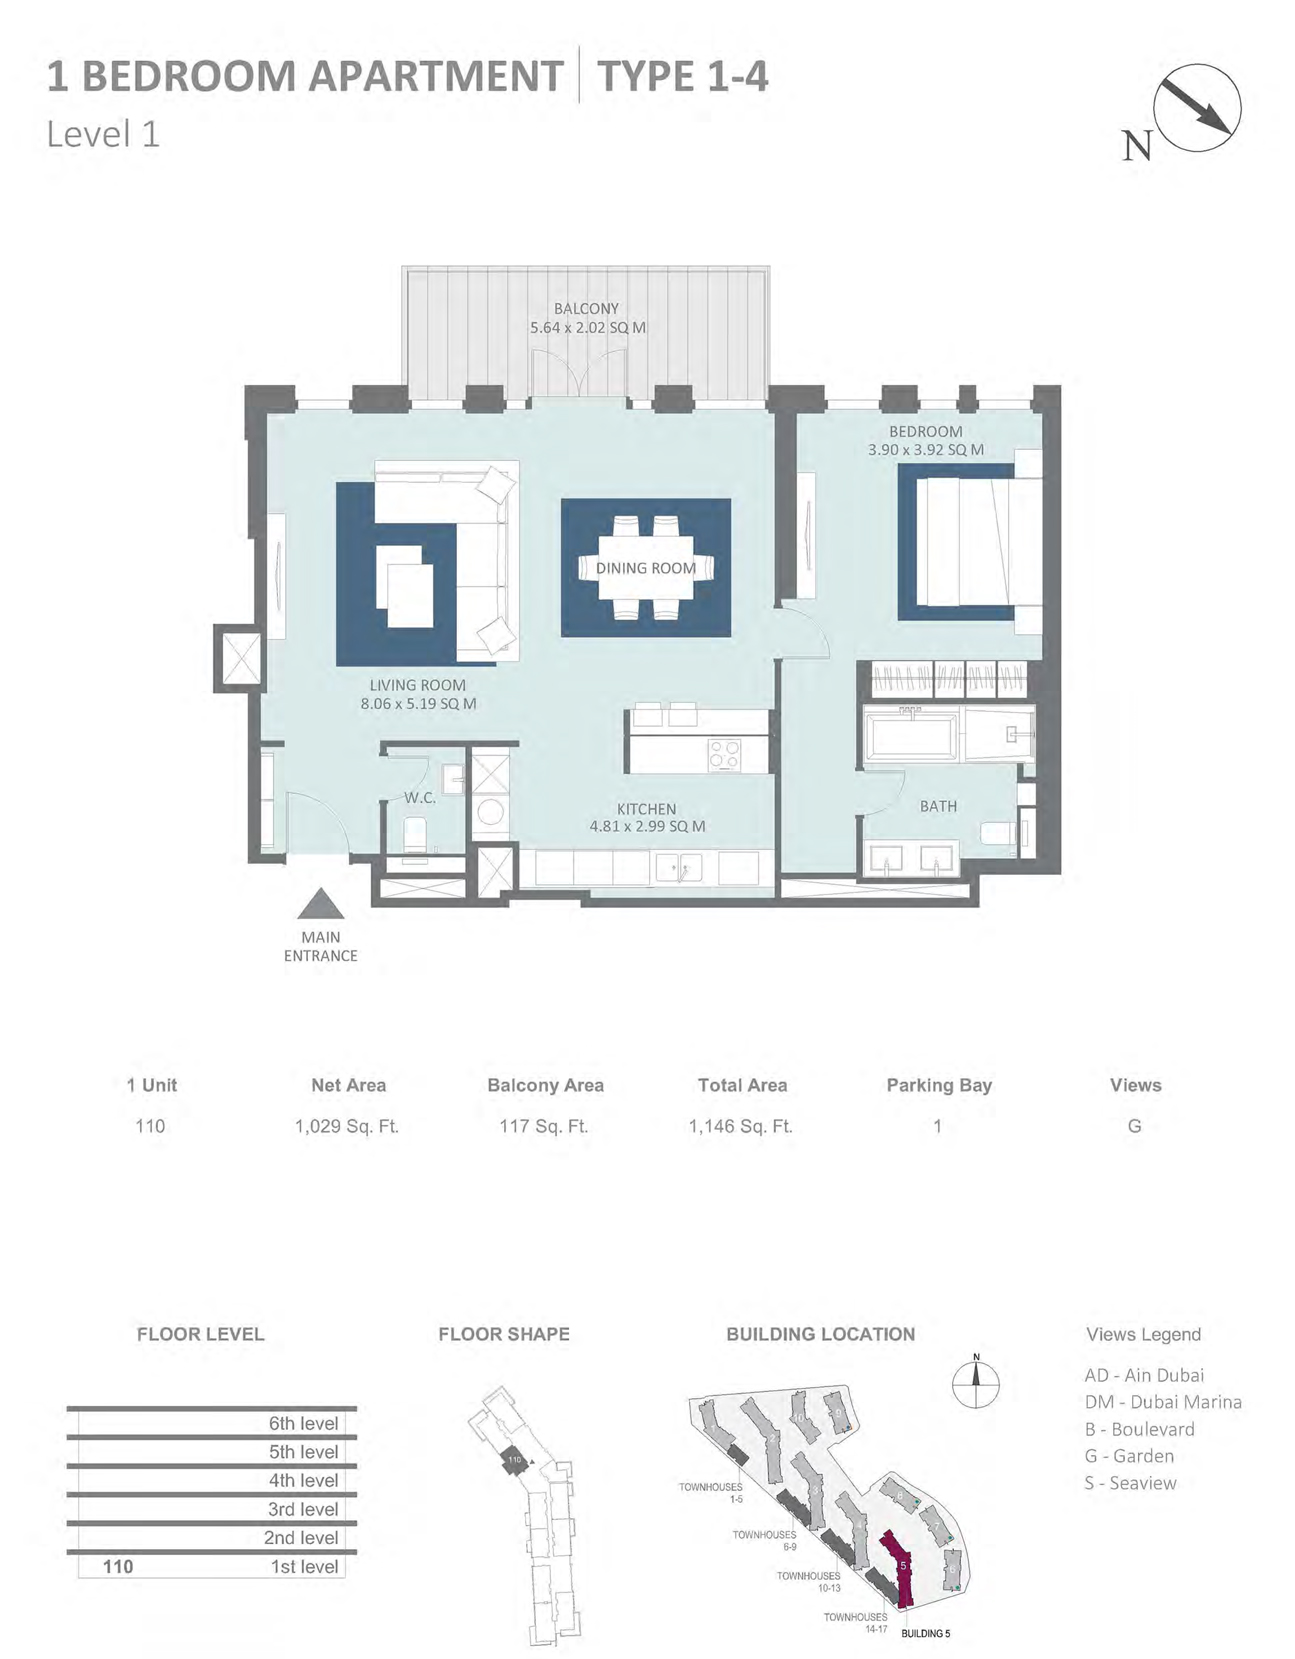 Building 5 - 1 Bedroom Type 1-4 Level 1 , Size 1029 sq ft